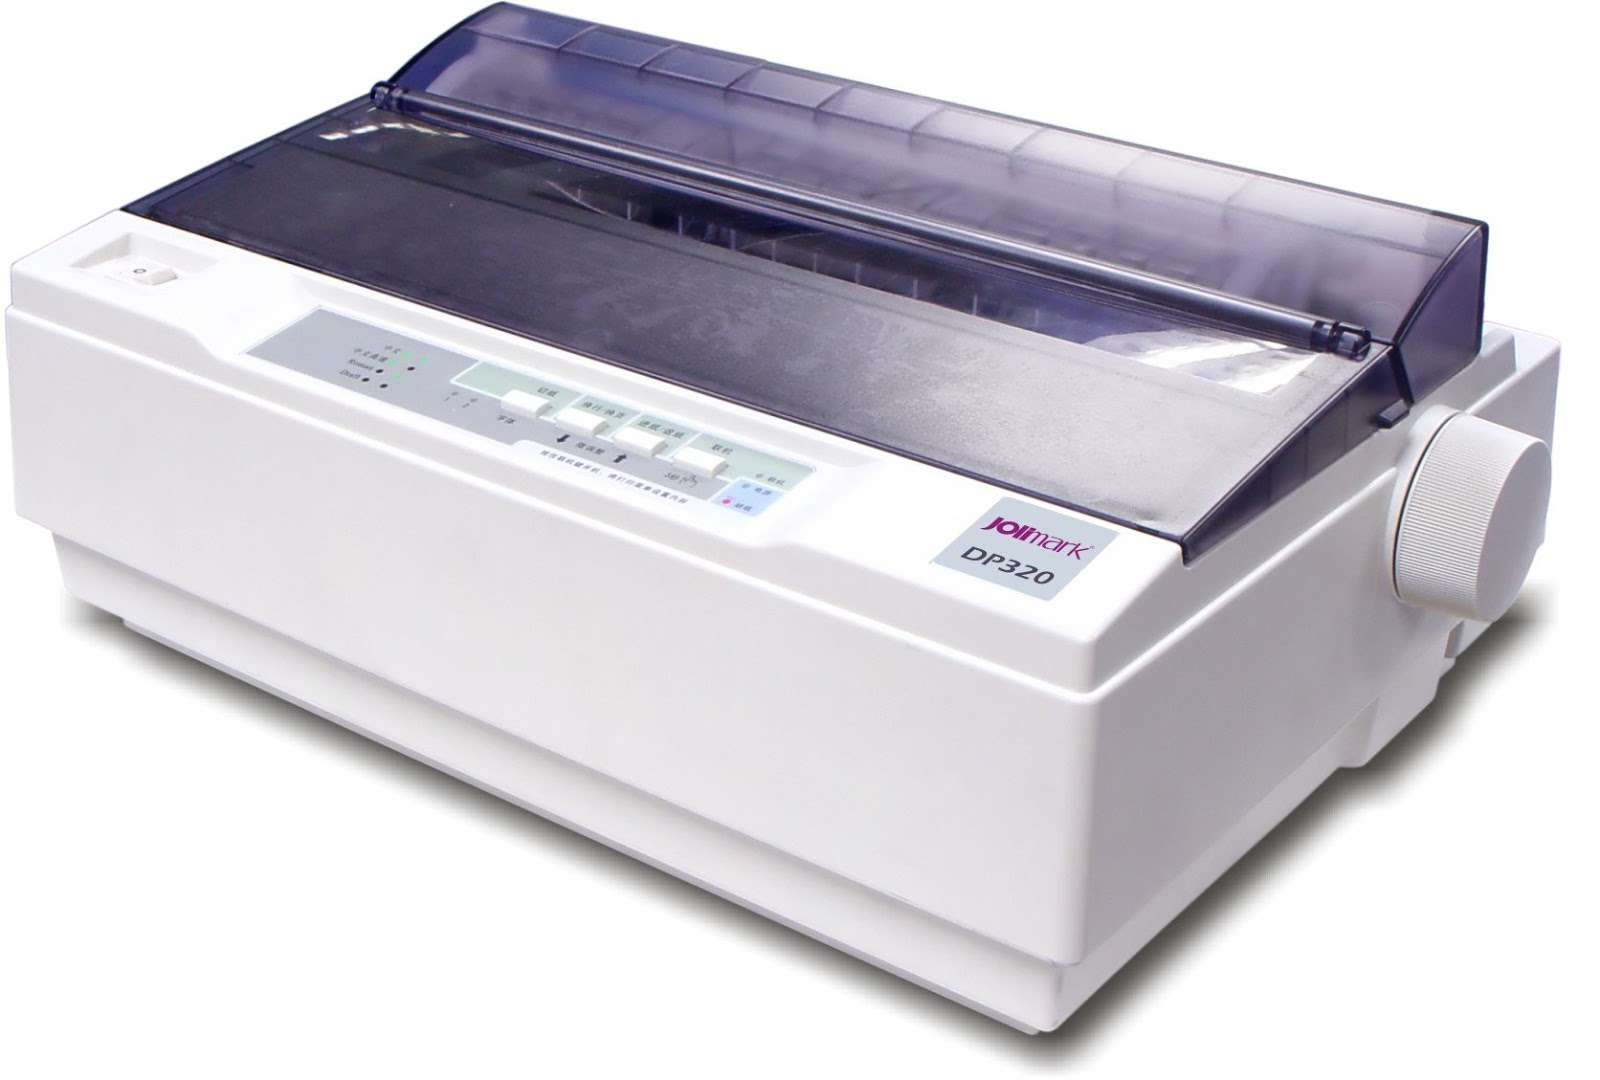 dot matrix printer Oki ml4410 dot matrix printer (dual 9pin, printing width: 136, centronics parallel ieee1284, serial rs232c.